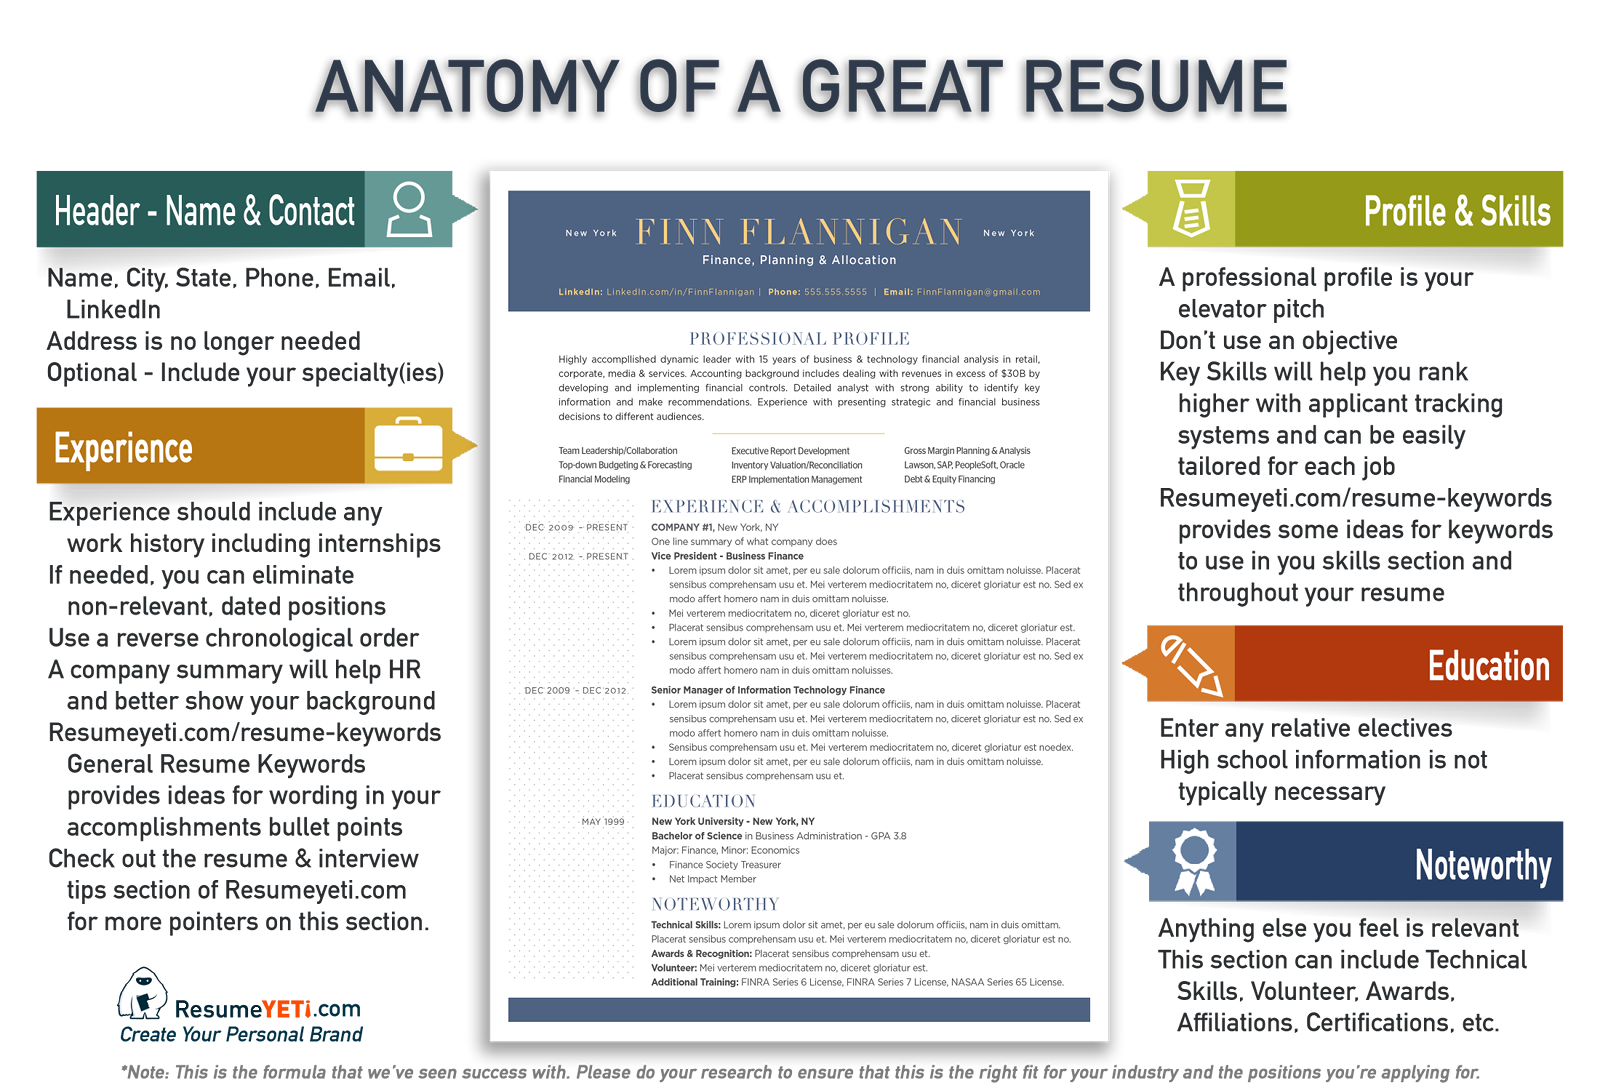 Anatomy Of A Winning Resume - Submission specialist | Essay Helper ...